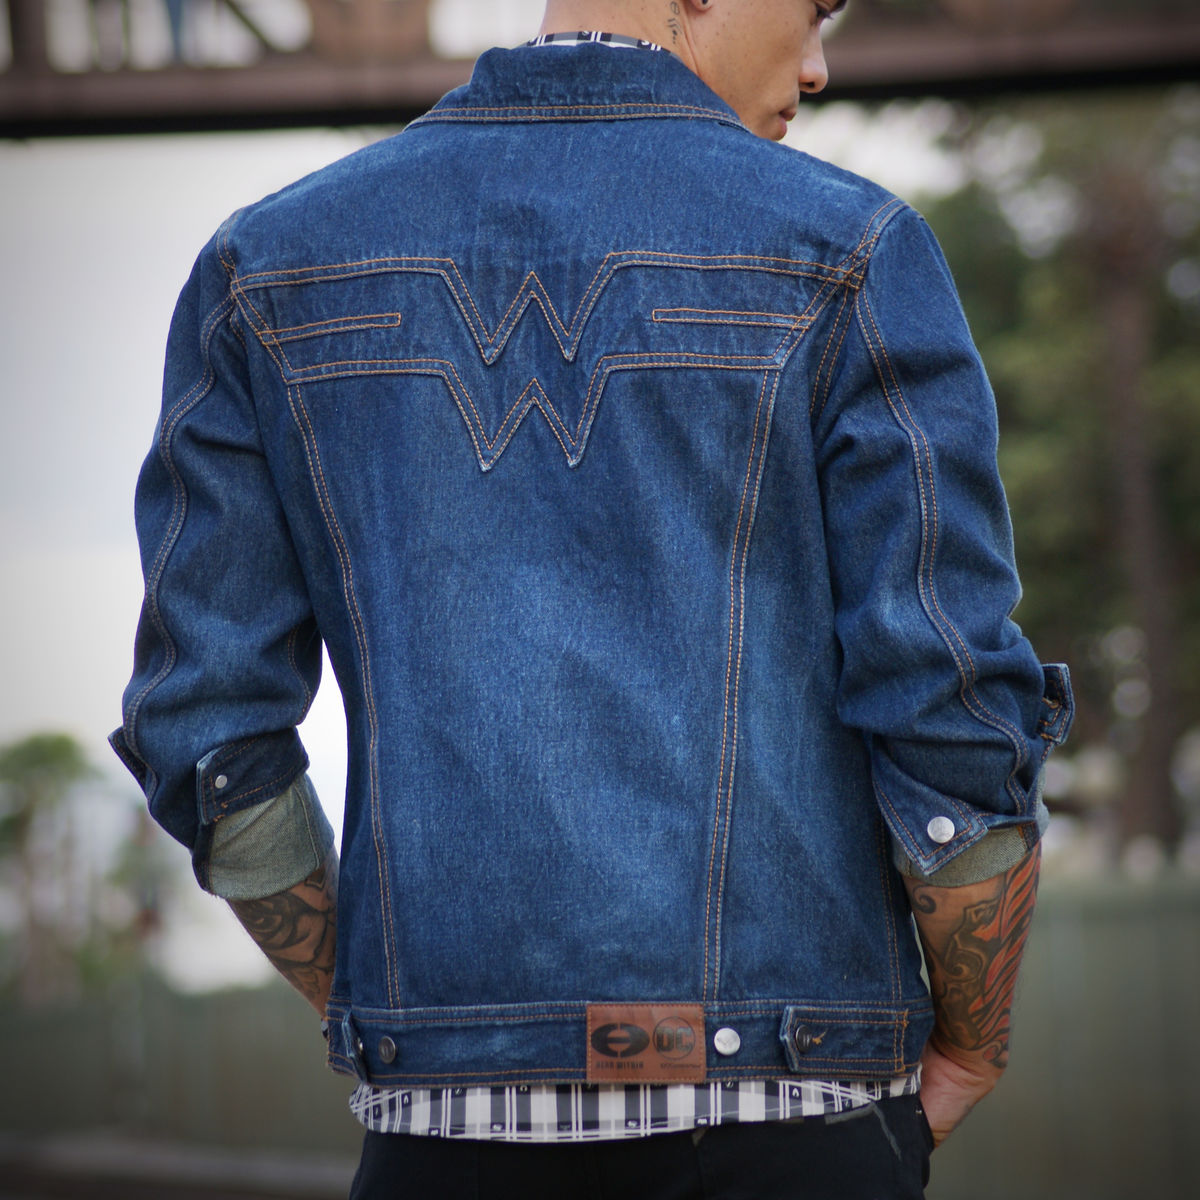 WW_Denim_Jacket_Back.JPG